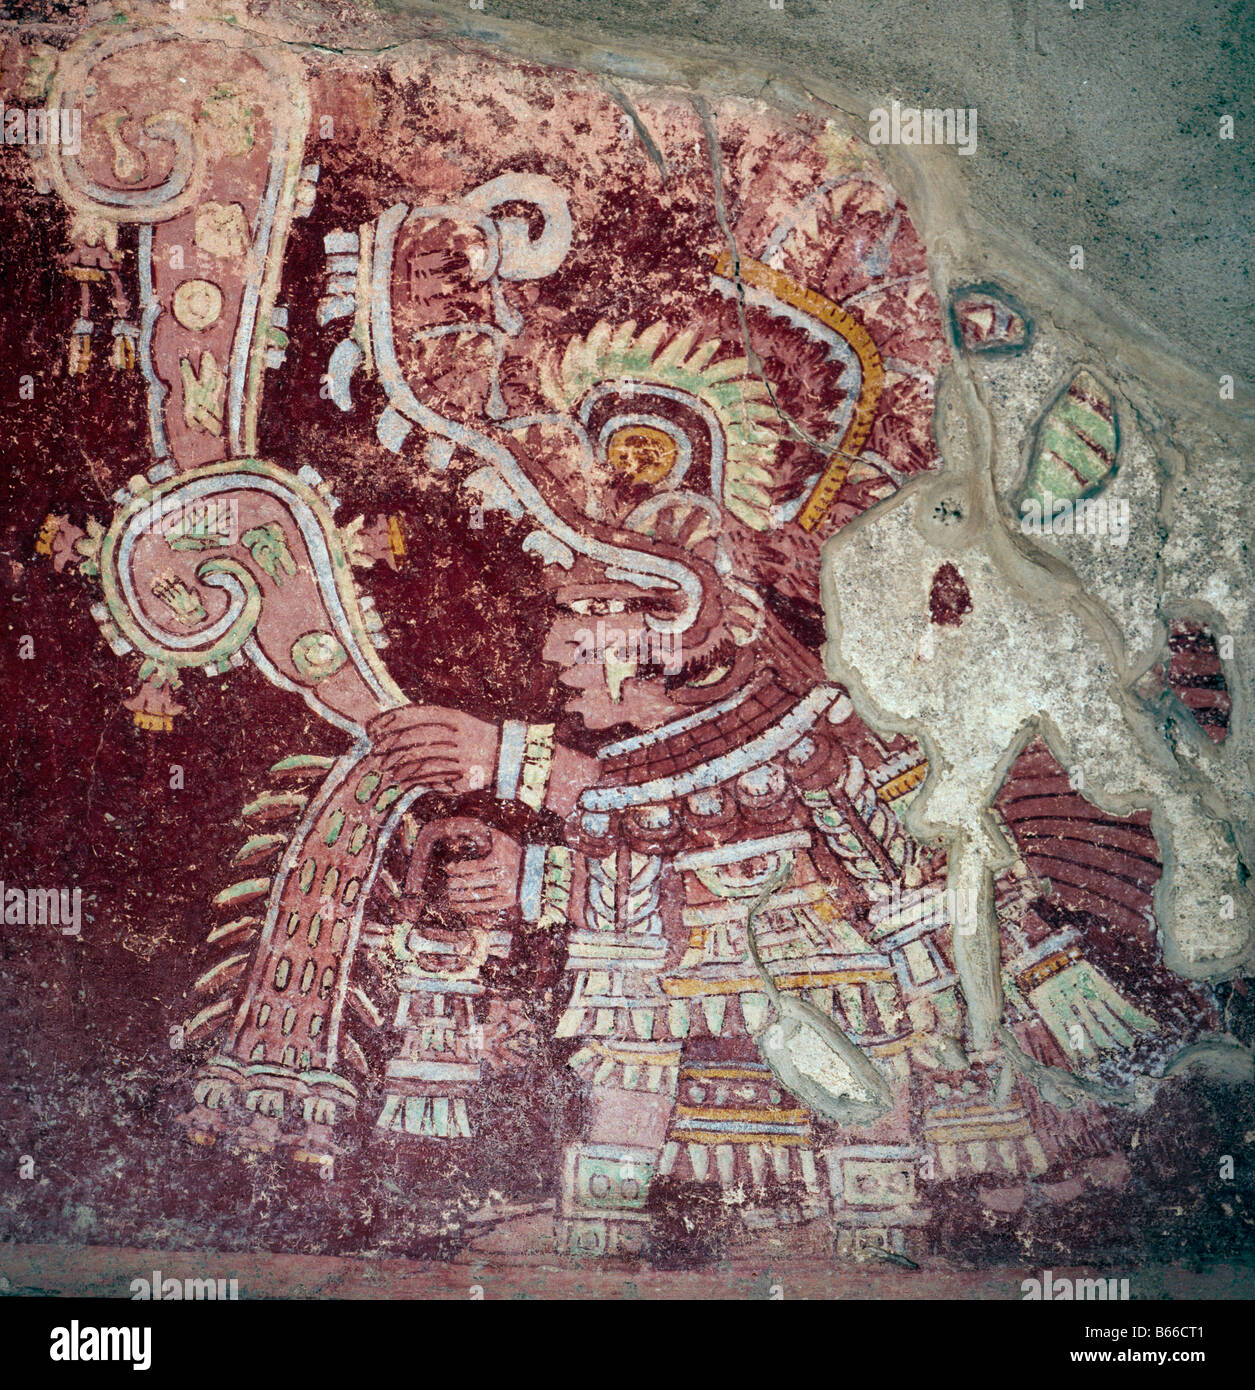 Mexico teotihuacan tepantitla mural stock photo royalty for Aztec mural painting